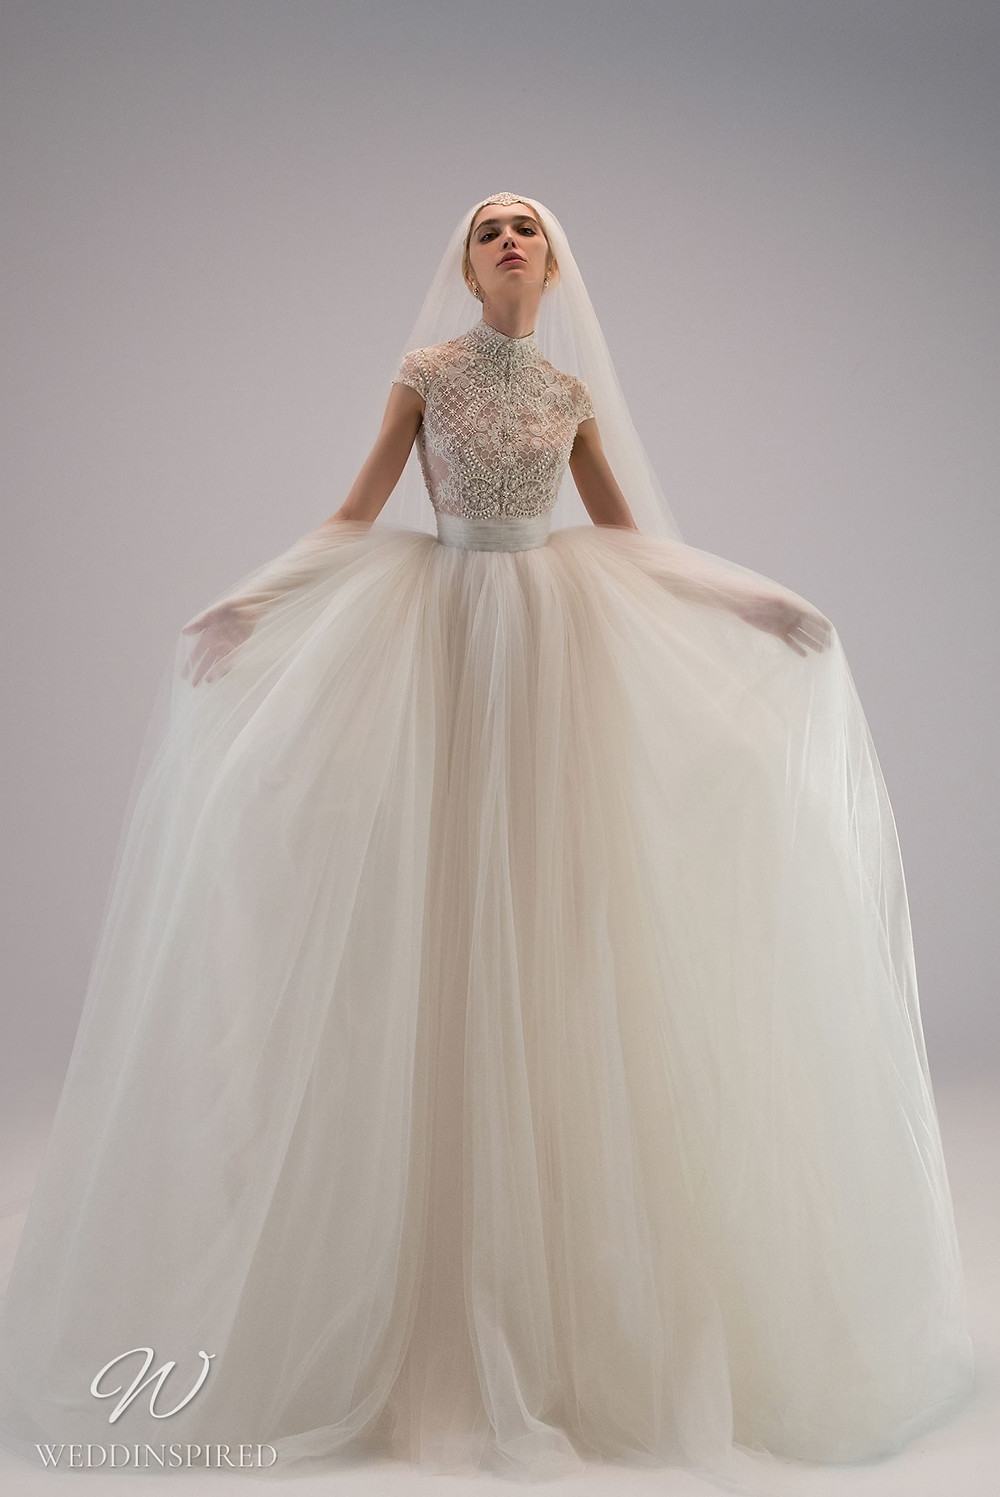 An Ersa Atelier 2021 modest ball gown wedding dress with a detachable chiffon skirt, a lace bodice, cap sleeves and beading